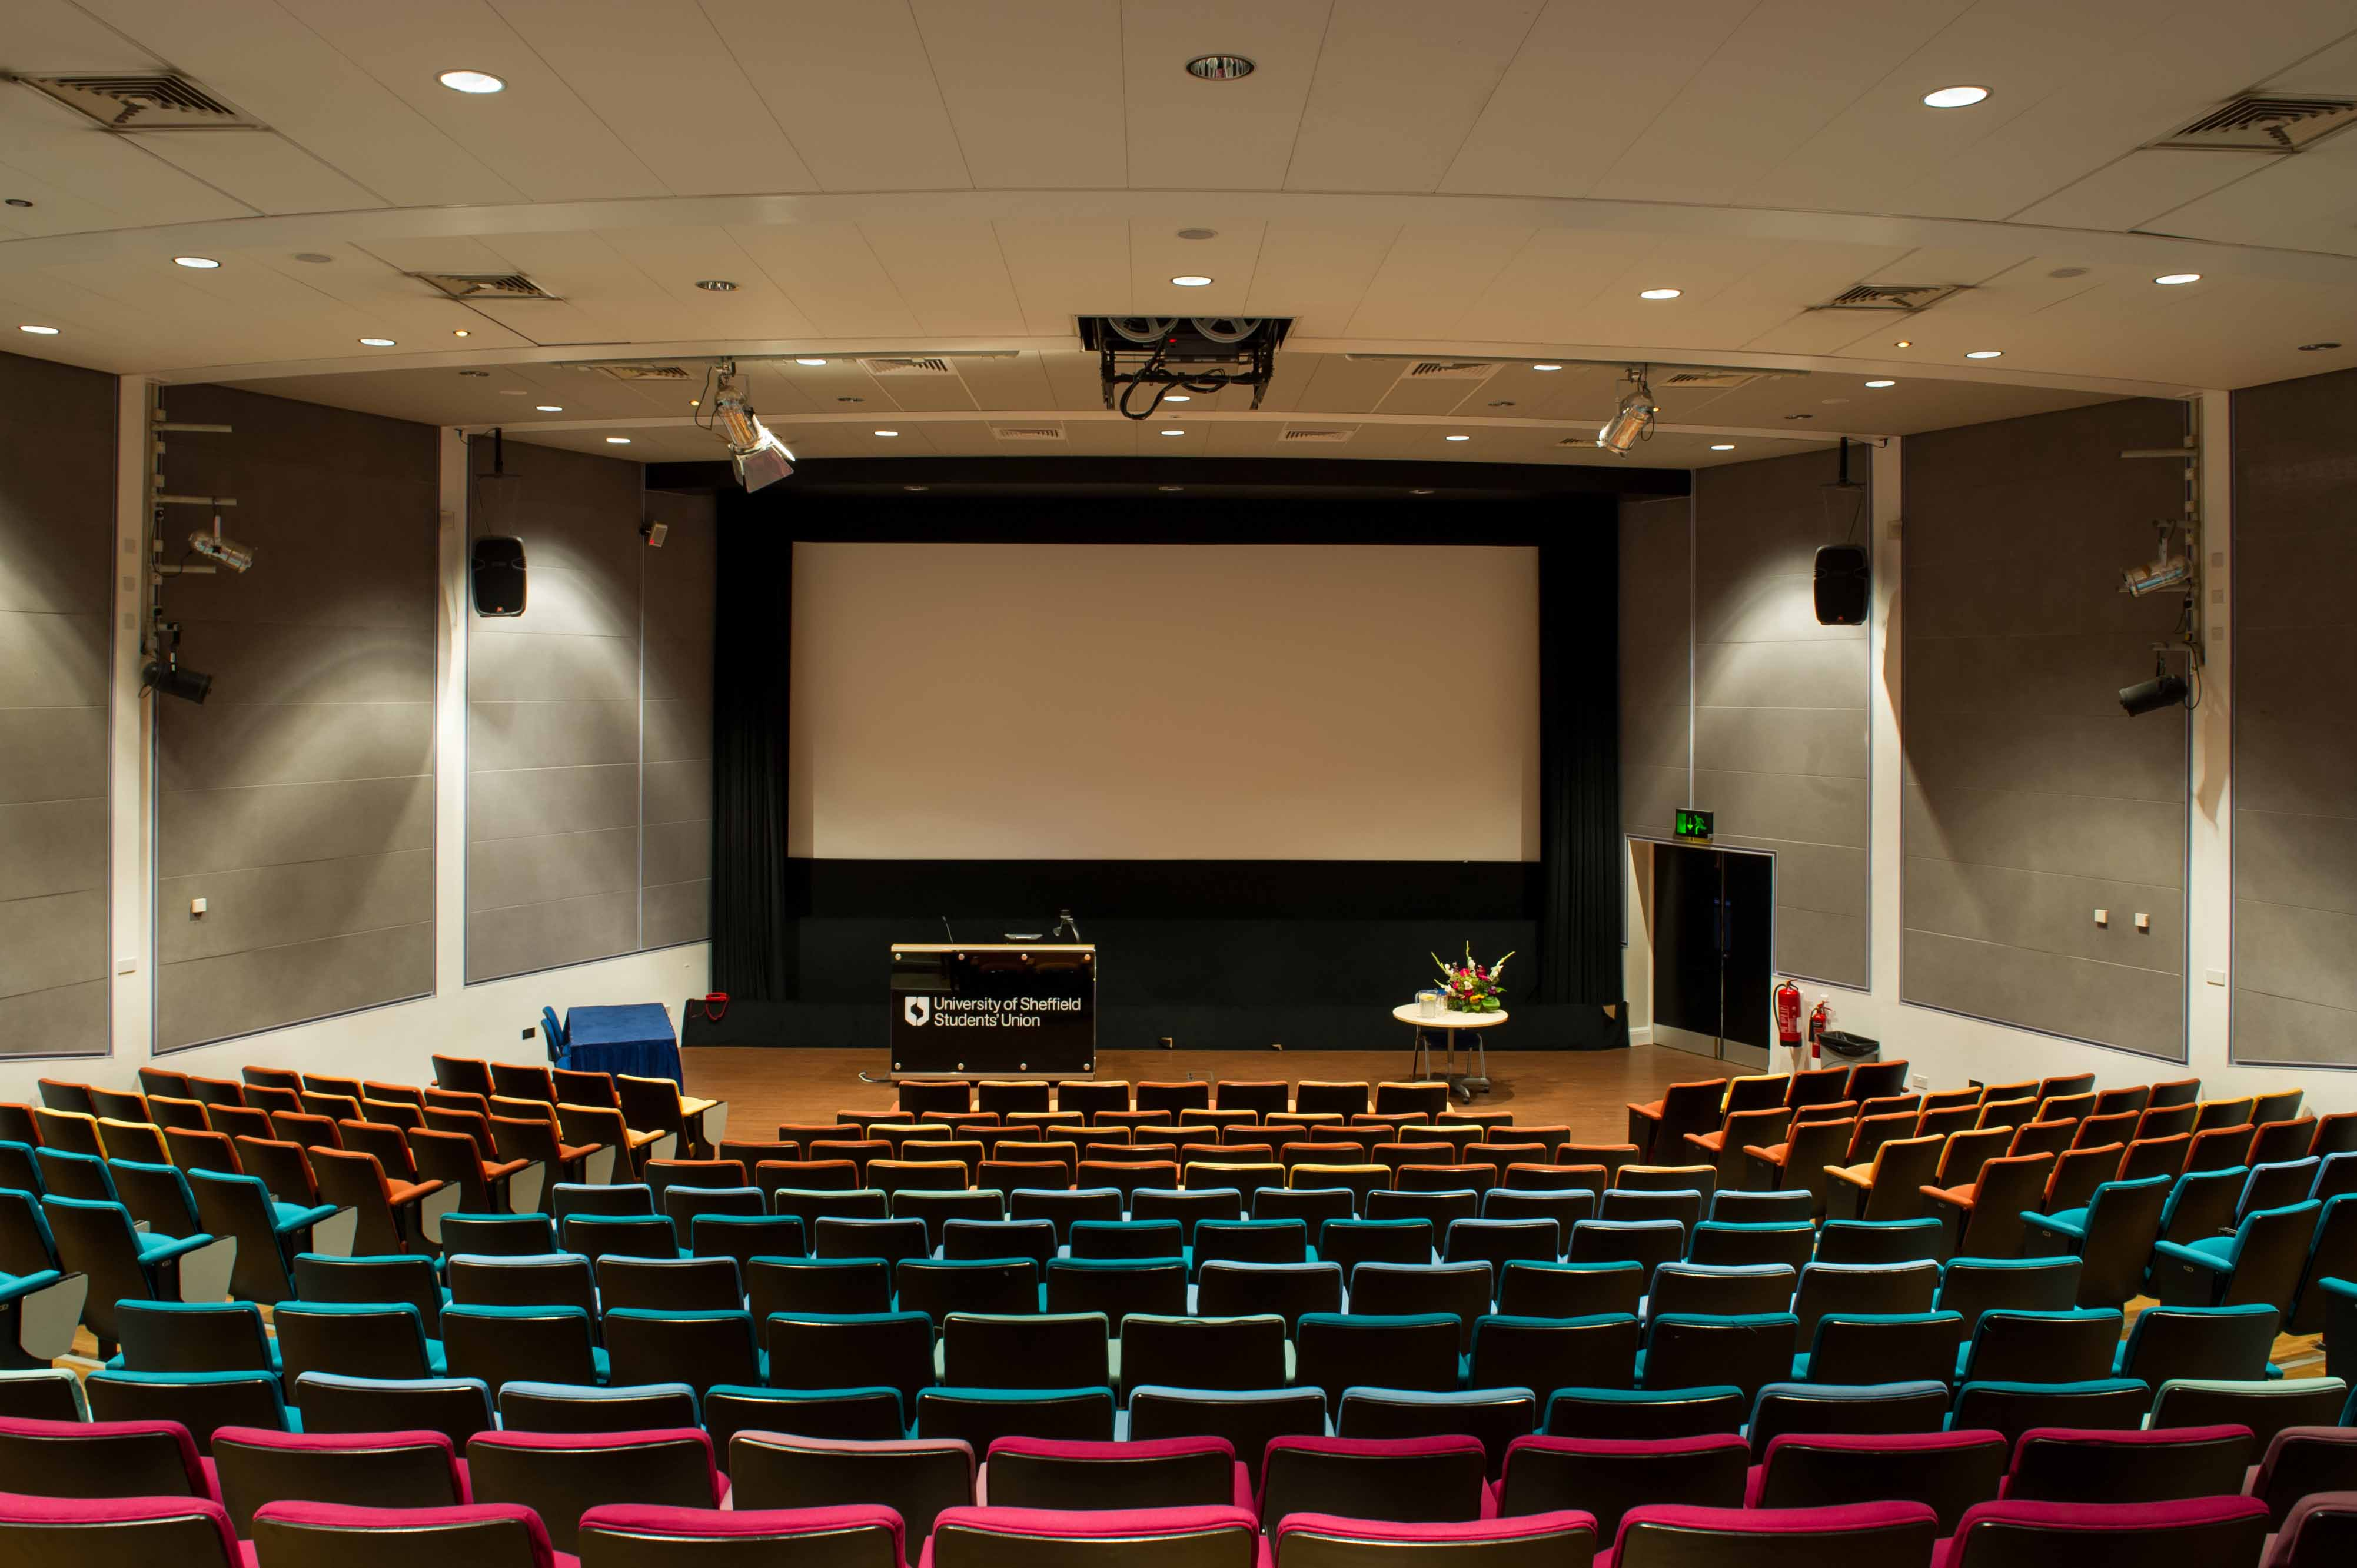 Sheffield Conference Venue - Students' Union withUS